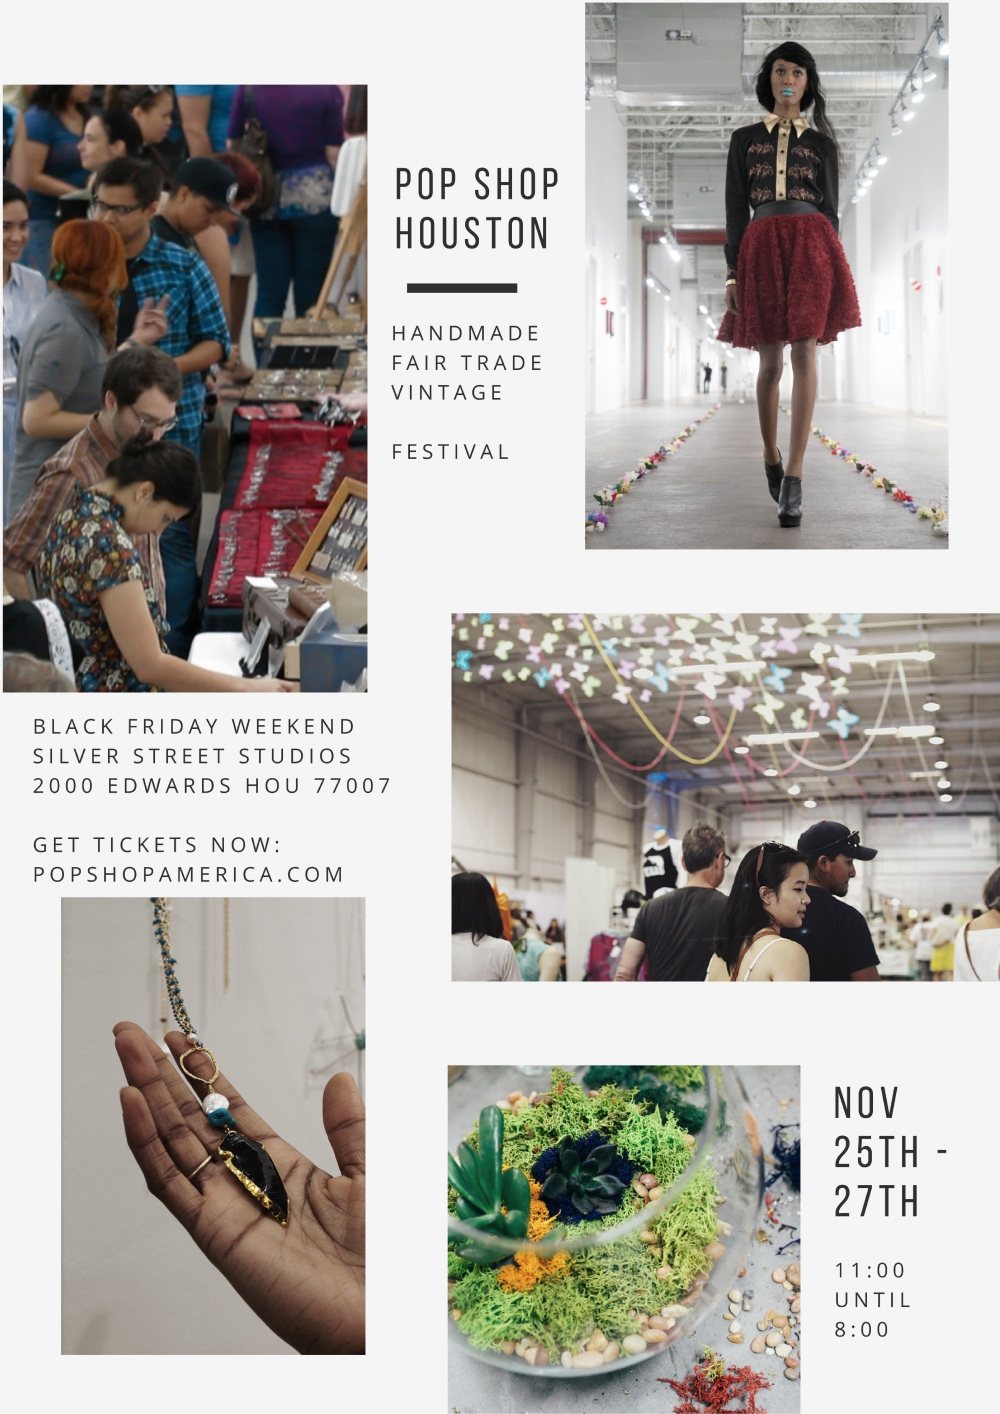 pop-shop-houston-art-festival-black-friday-weekend-shopping-2016